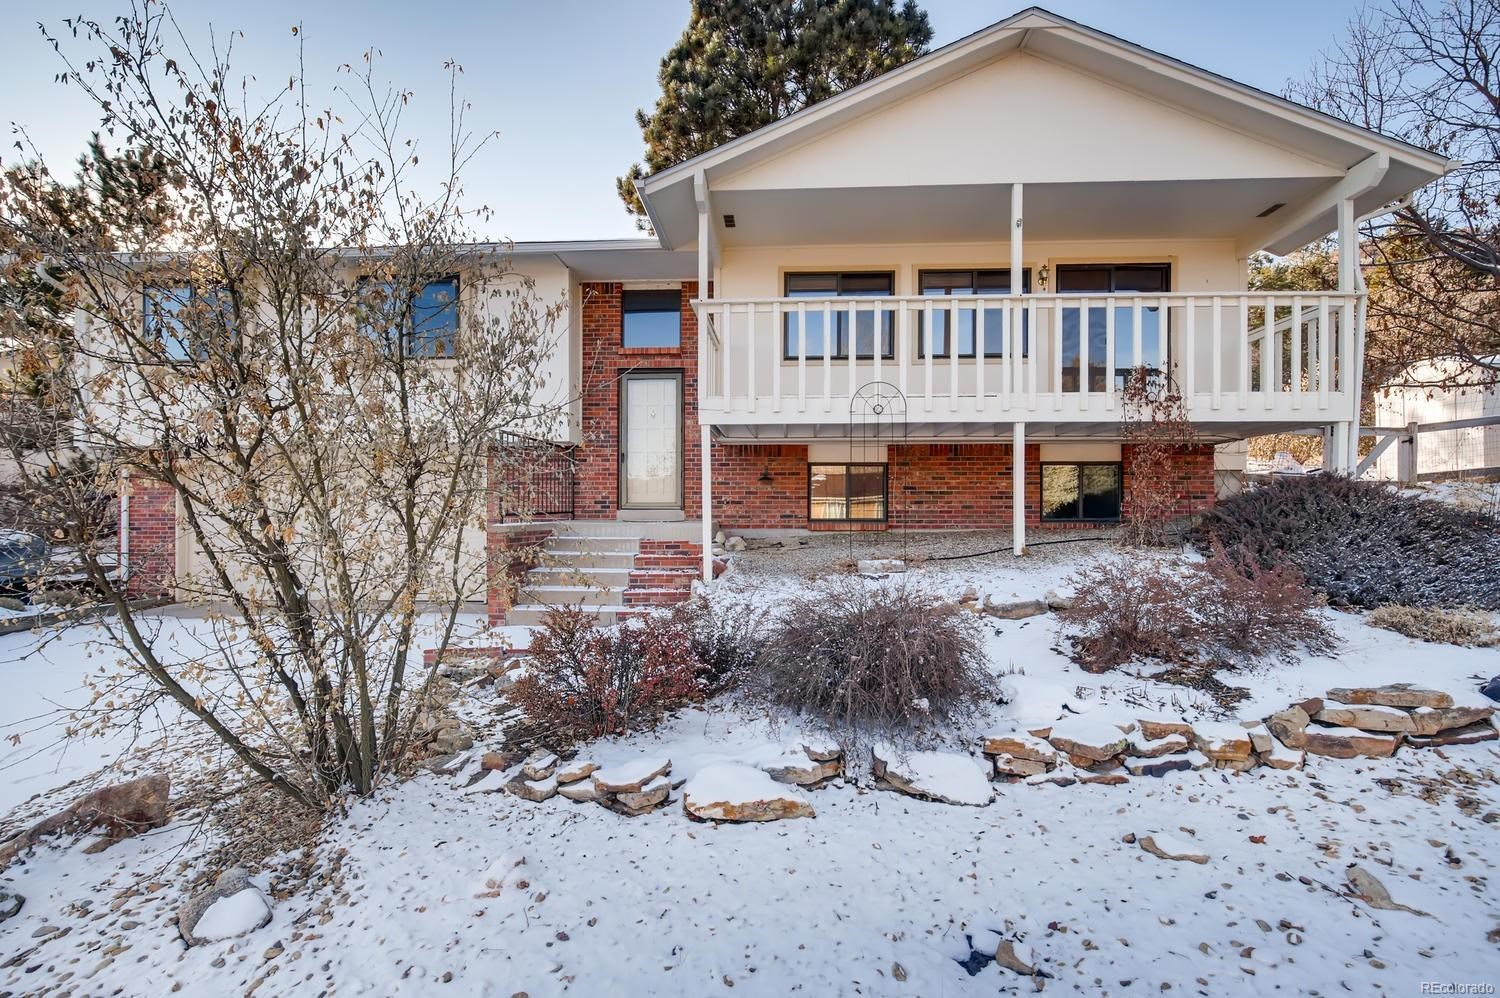 MLS# 3207650 - 2 - 271 Dawson Drive, Castle Rock, CO 80104